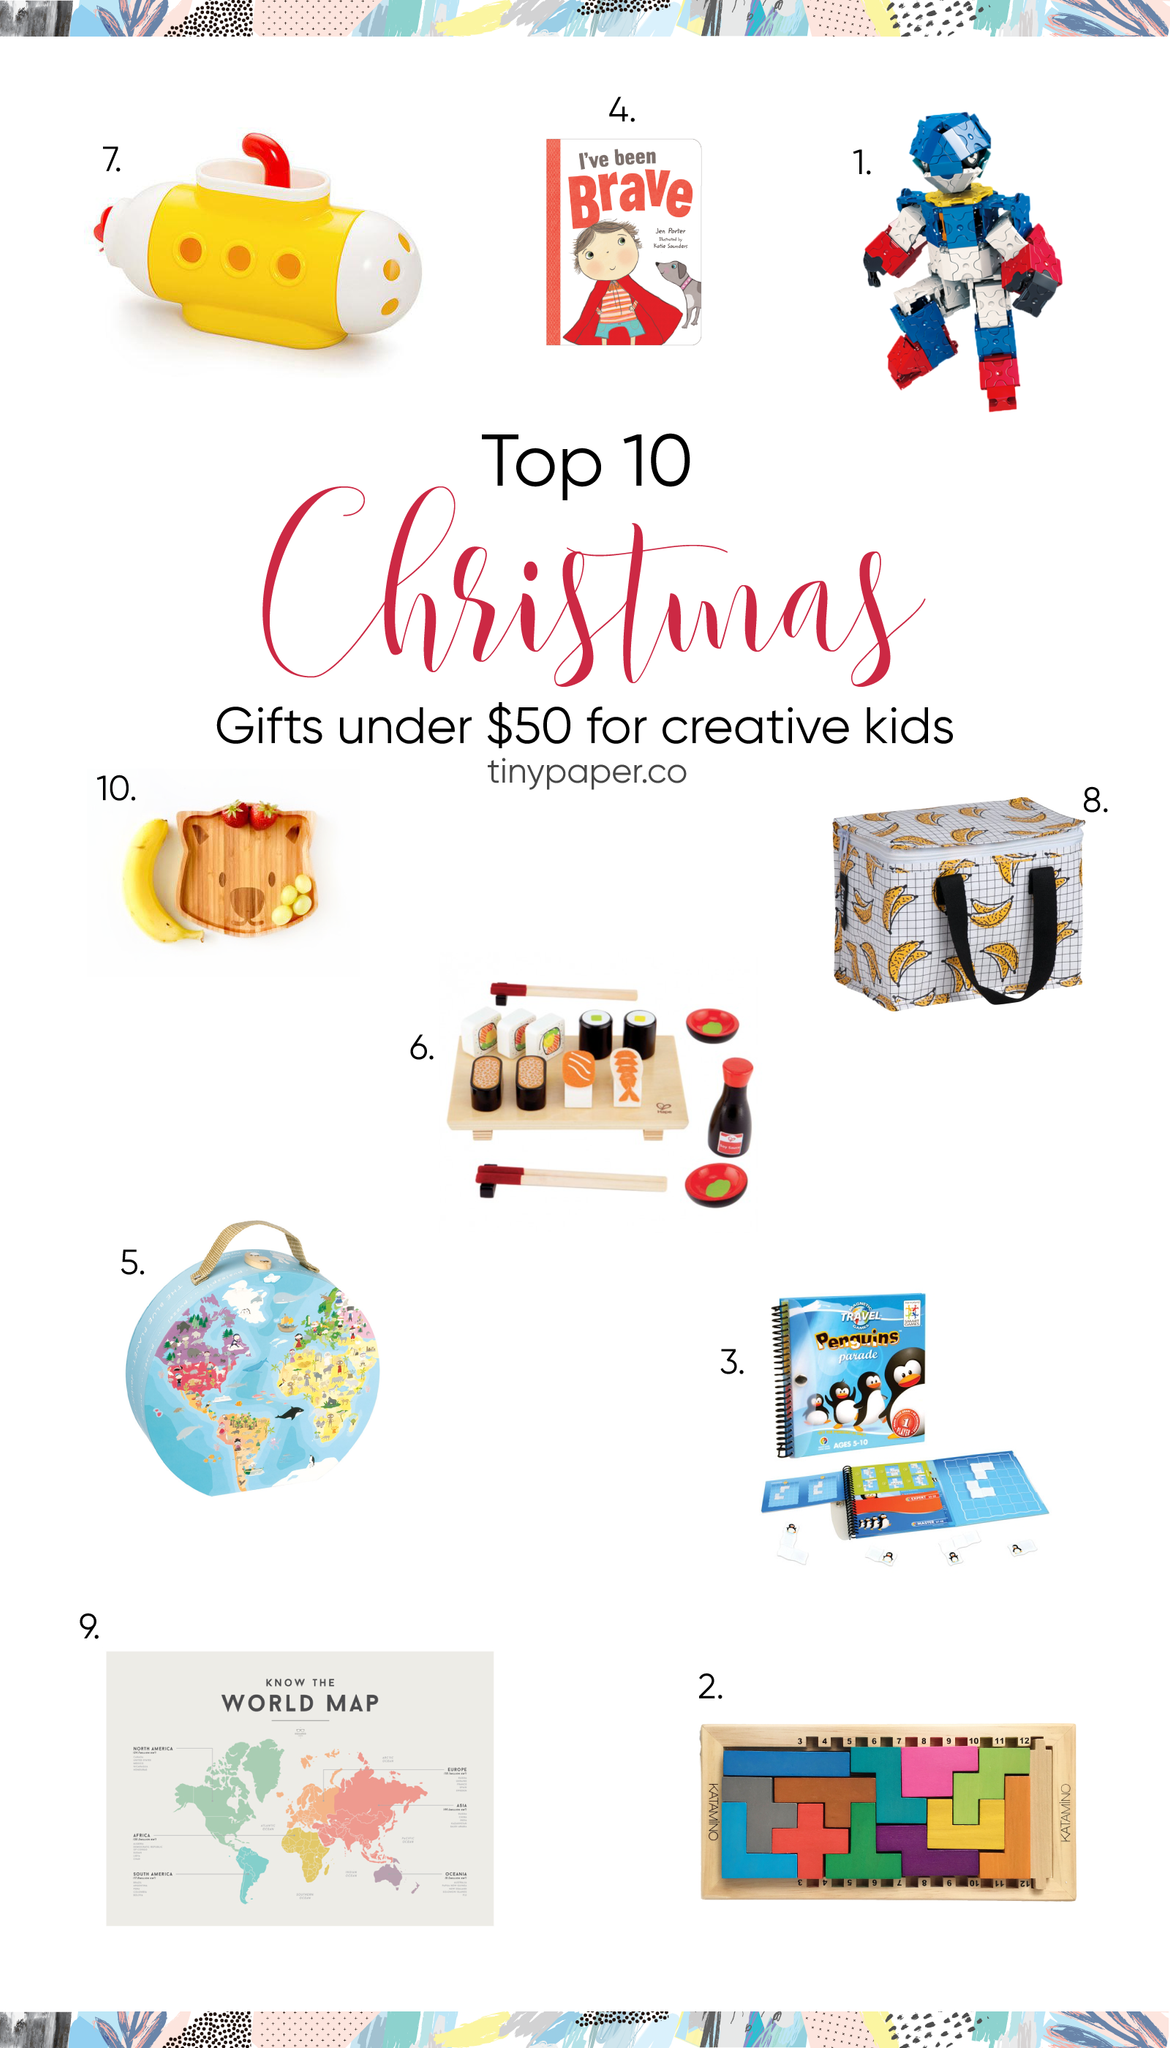 Top 10 Christmas Gifts Under $50 for Creative Kids | Tiny Paper Co.